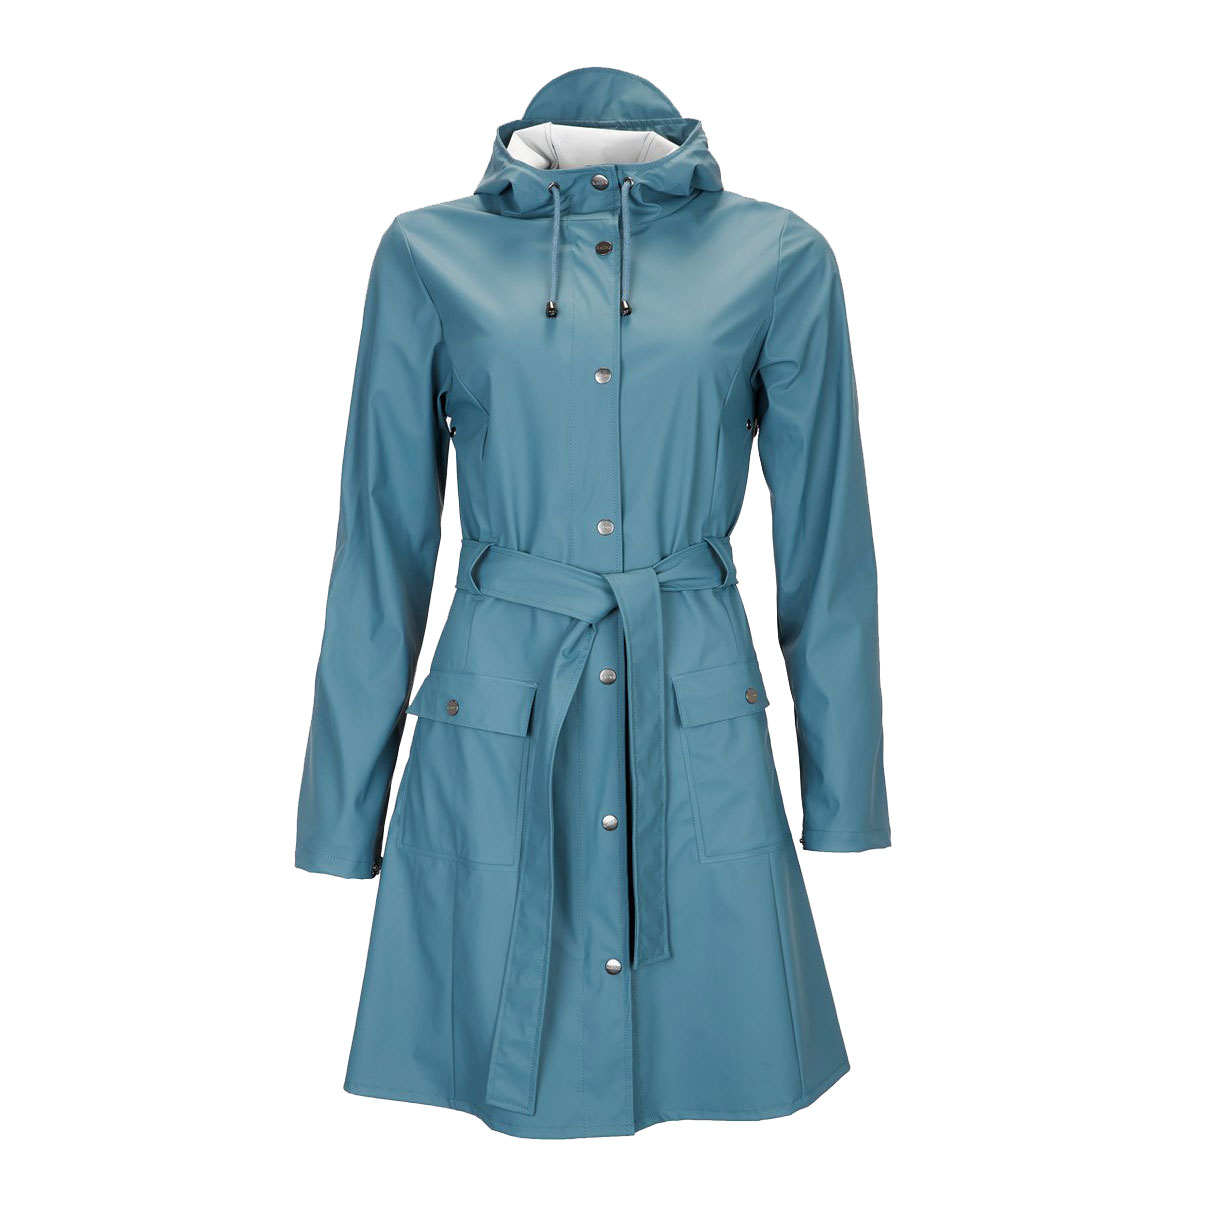 Where to Buy a Functional Raincoat That's Actually Cute - Racked